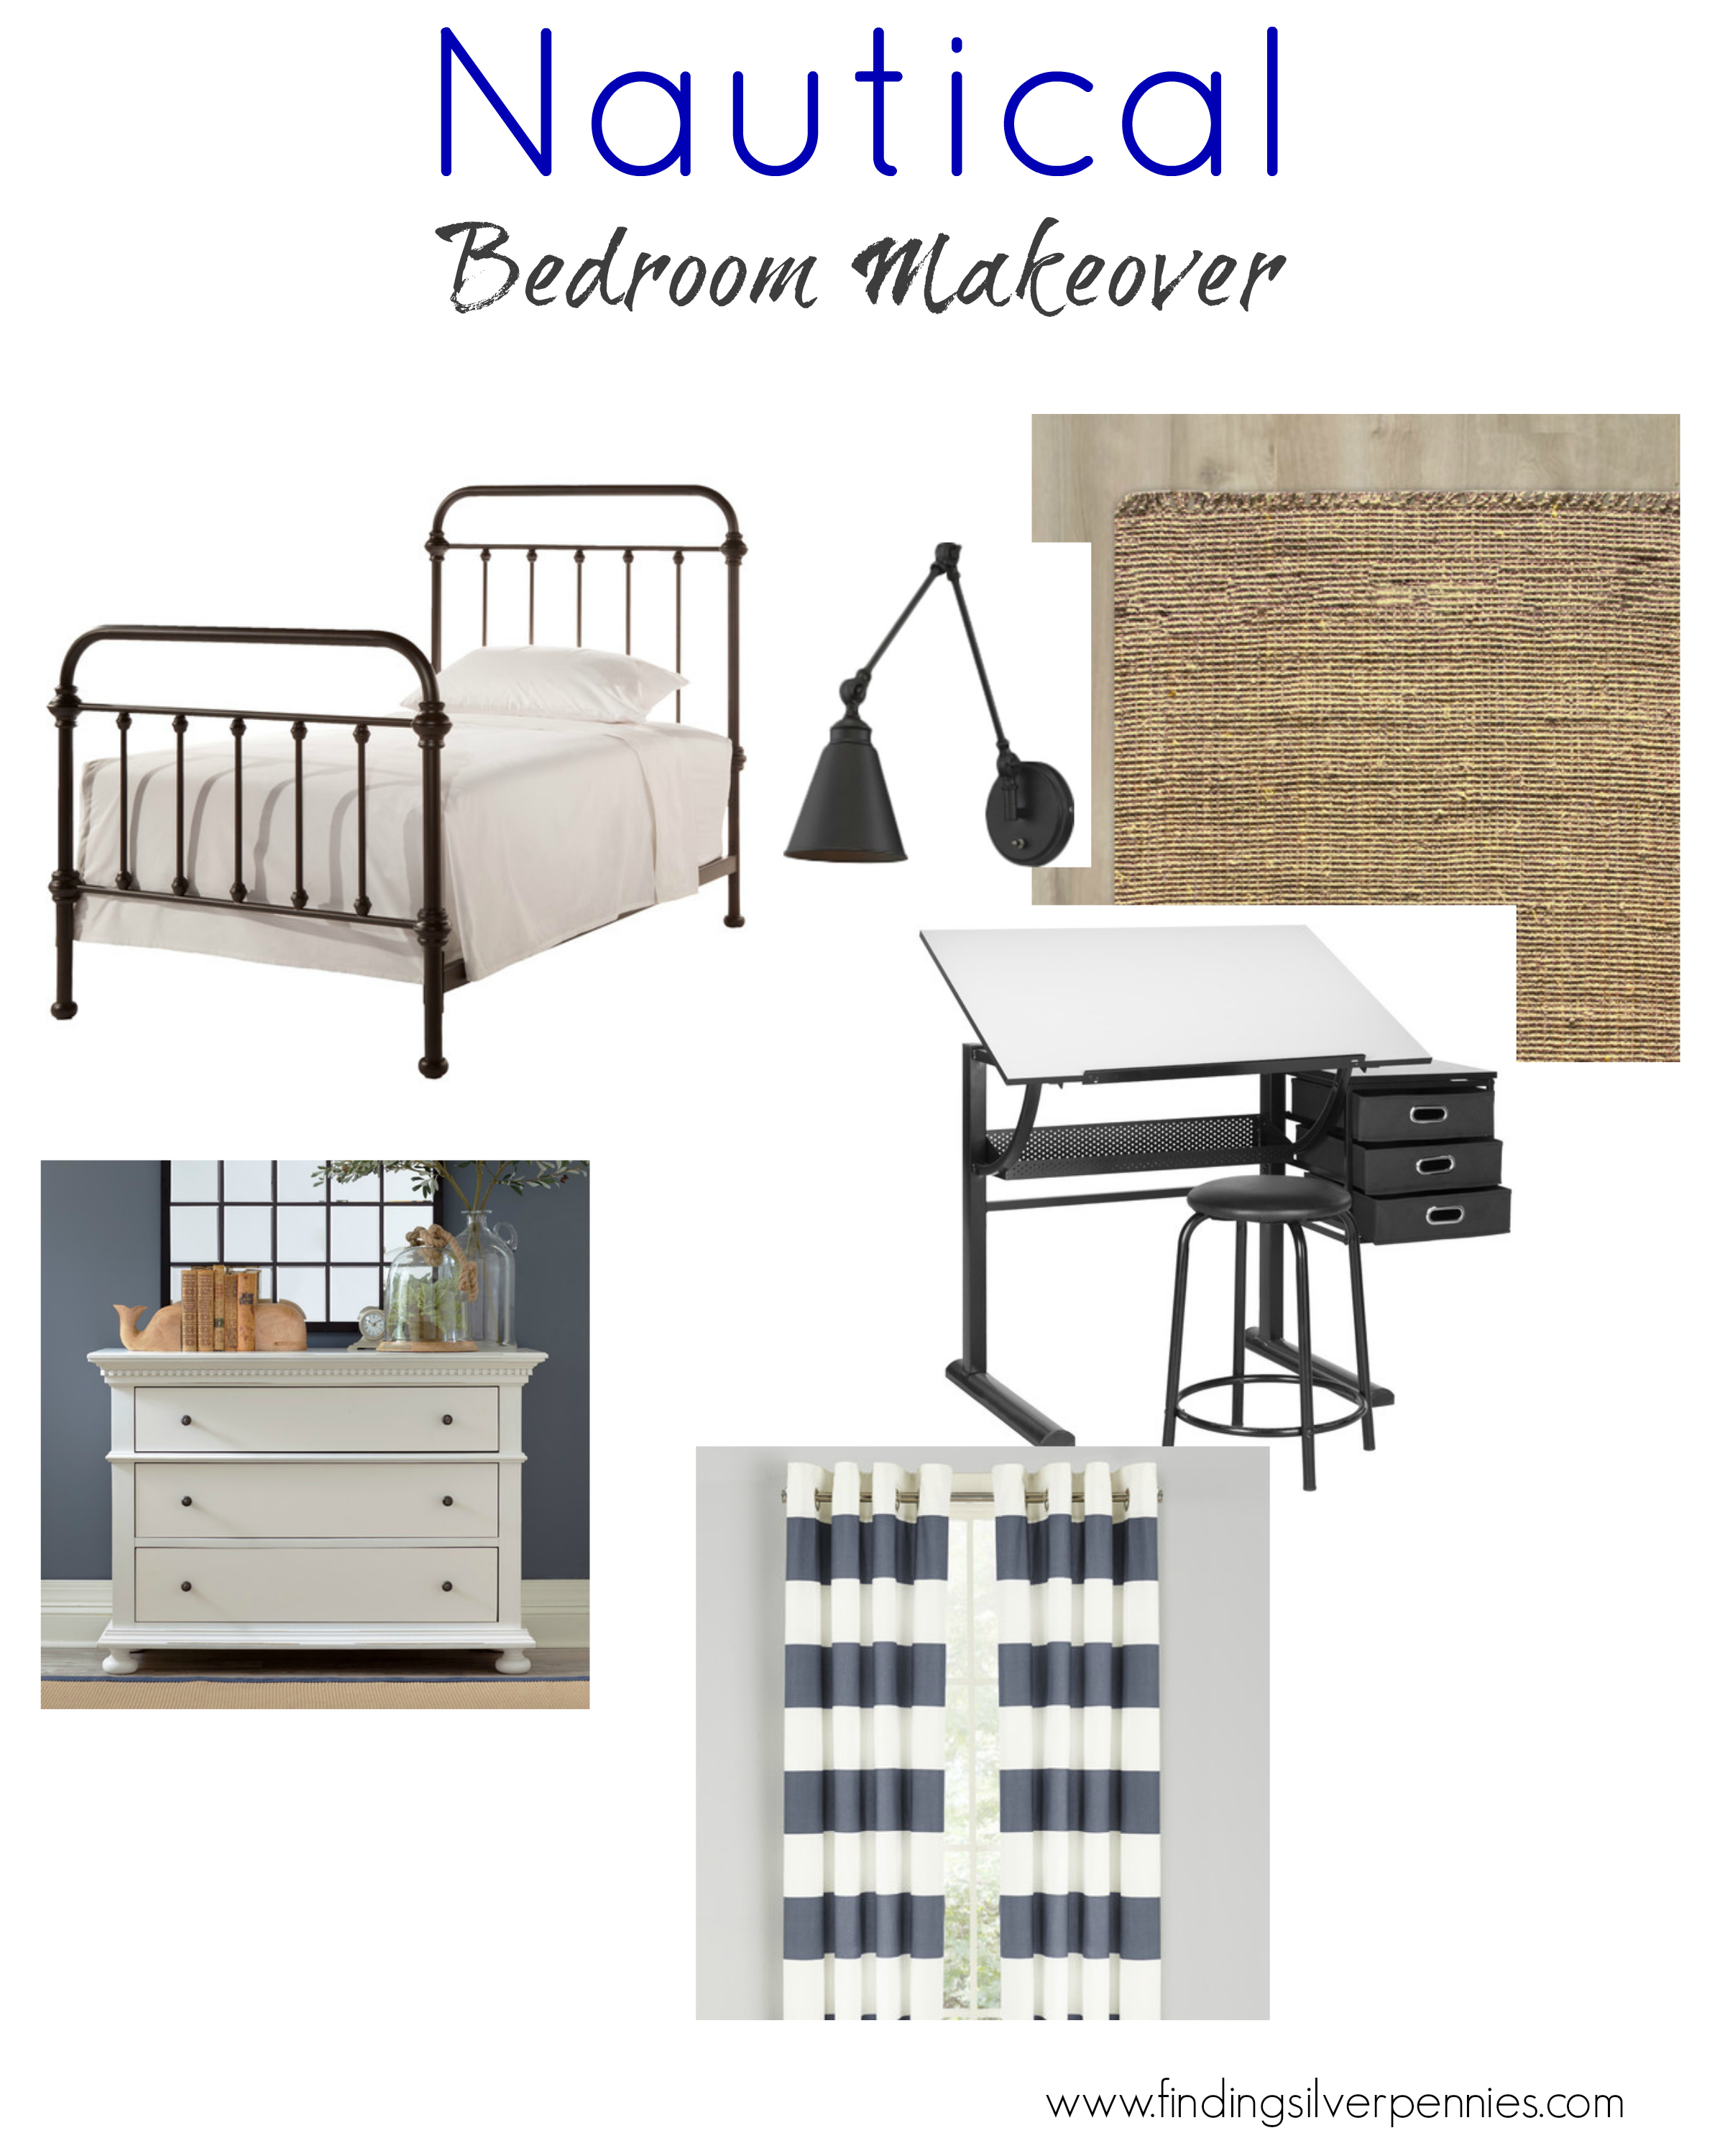 Boys 39 bedroom makeover inspiration finding silver pennies for Bedroom makeover inspiration